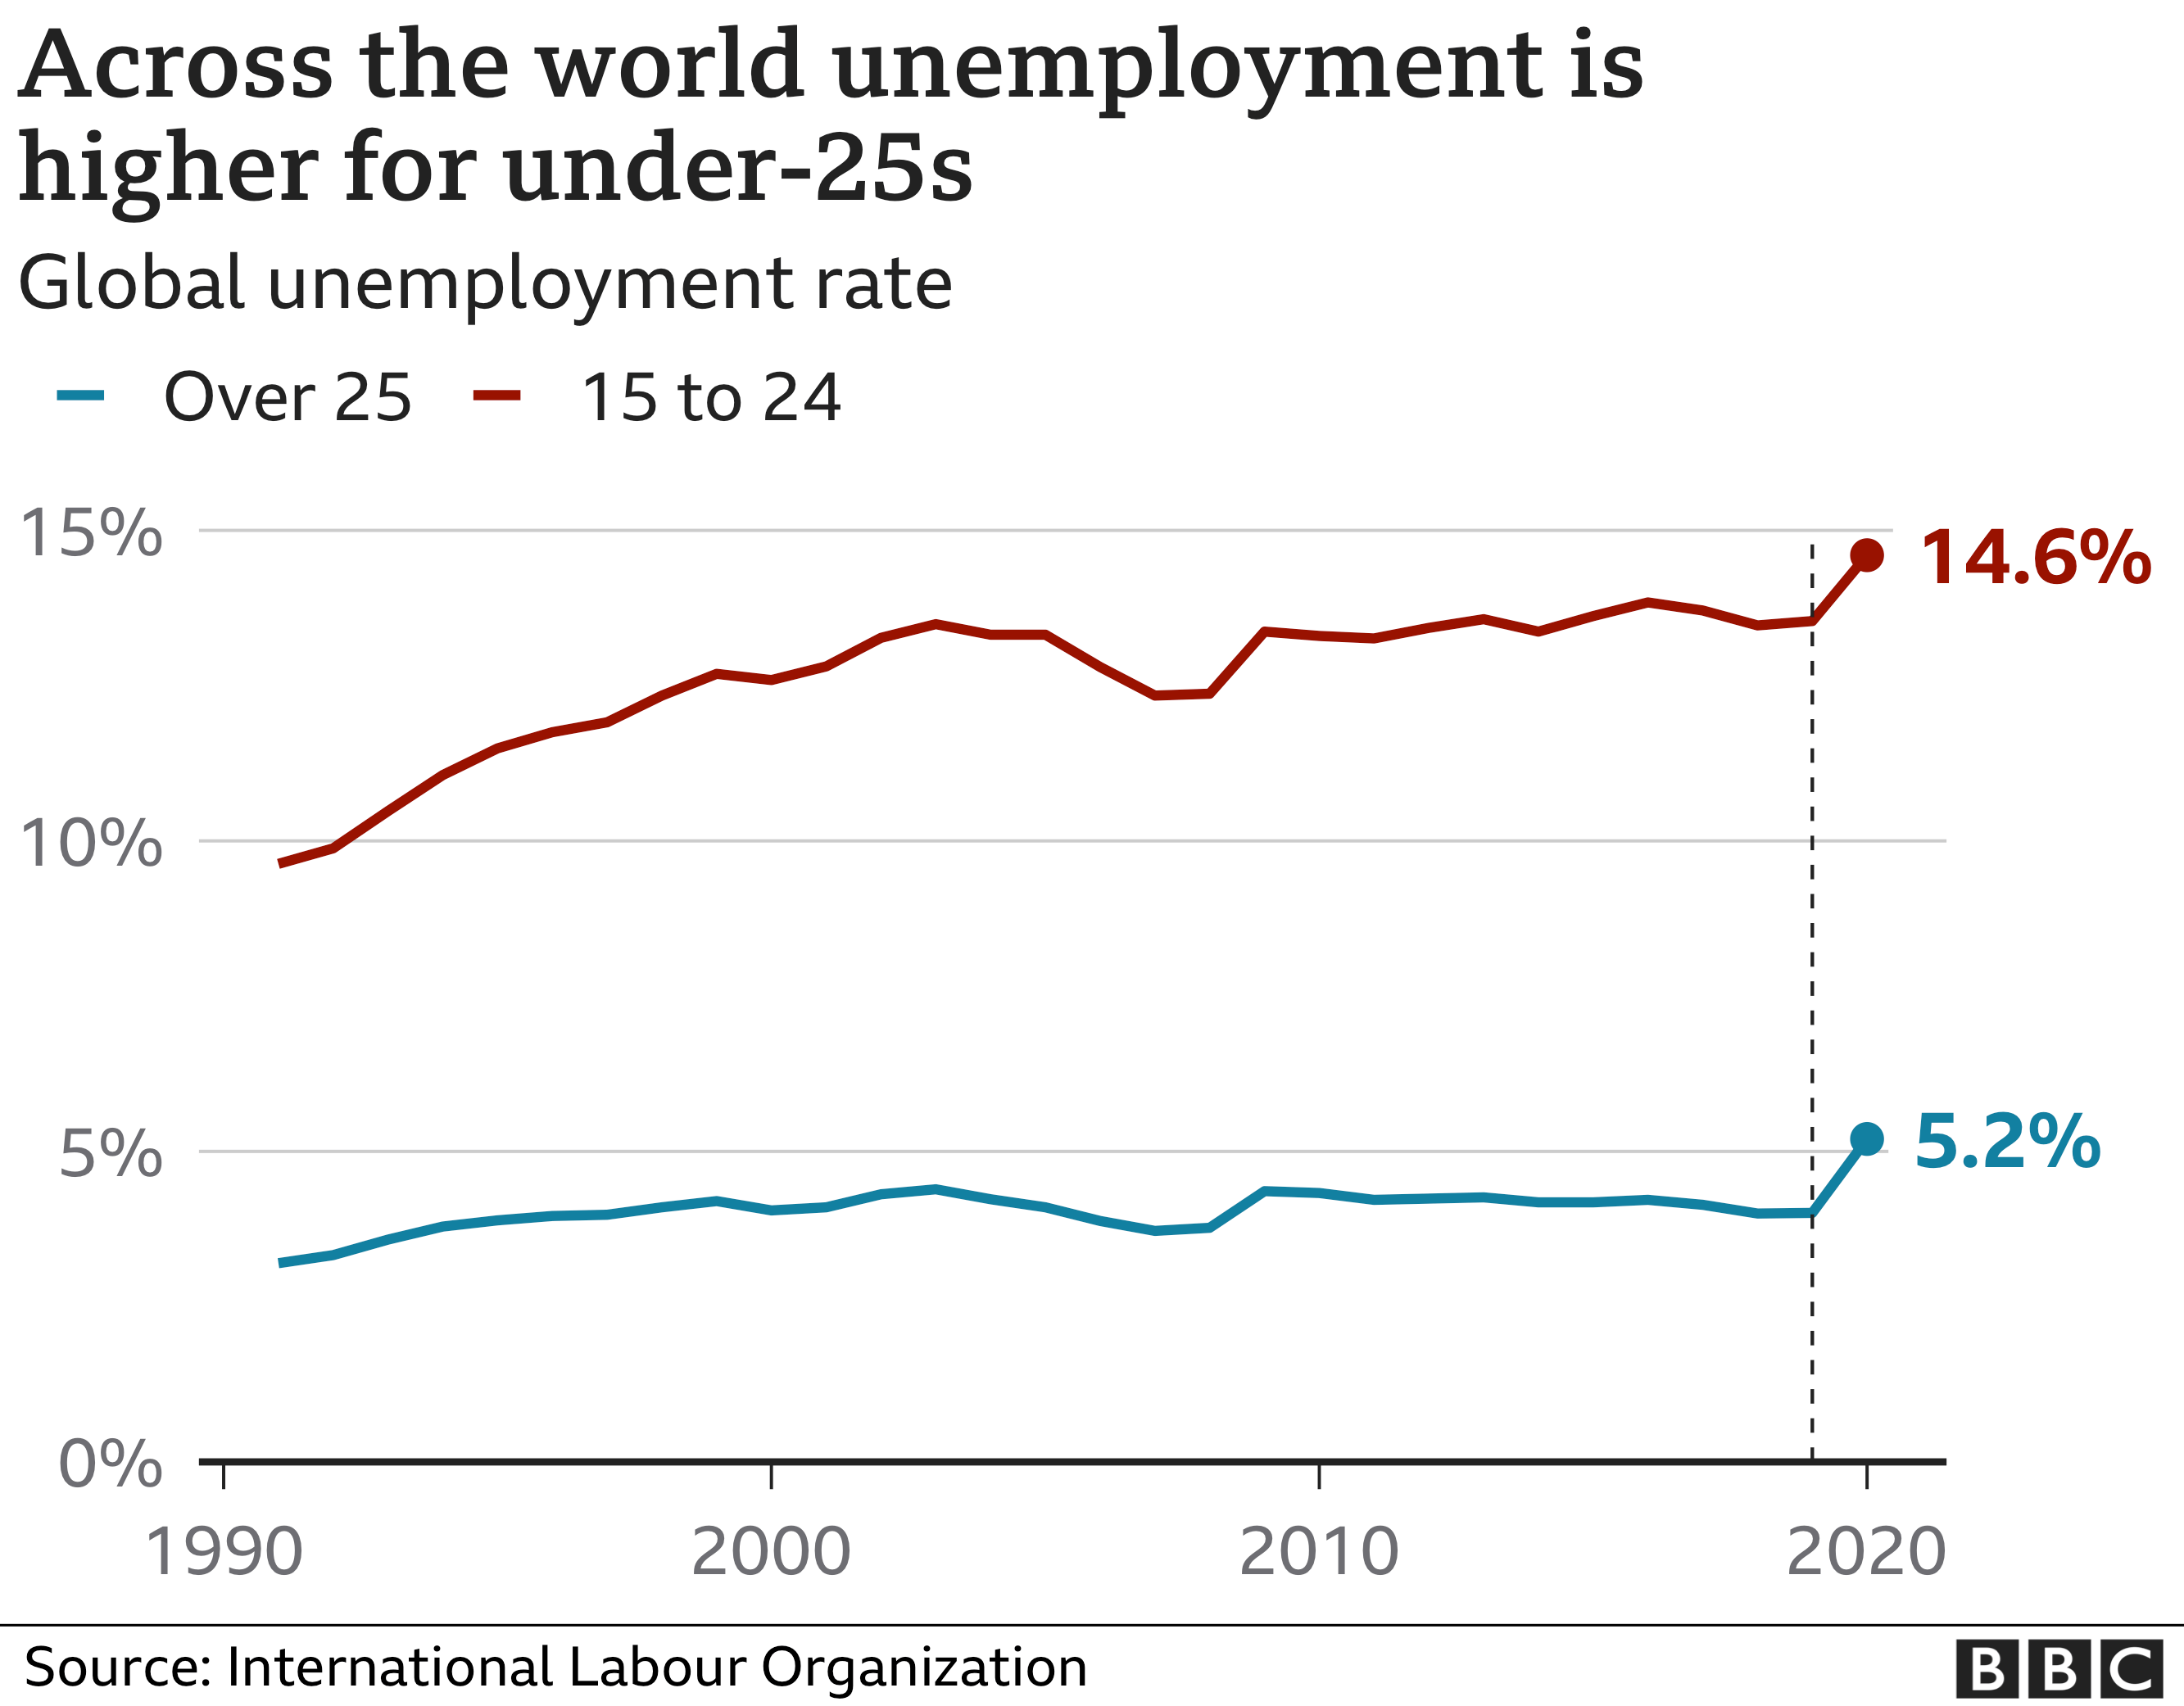 Chart showing unemployment at 14.6% for under 25s